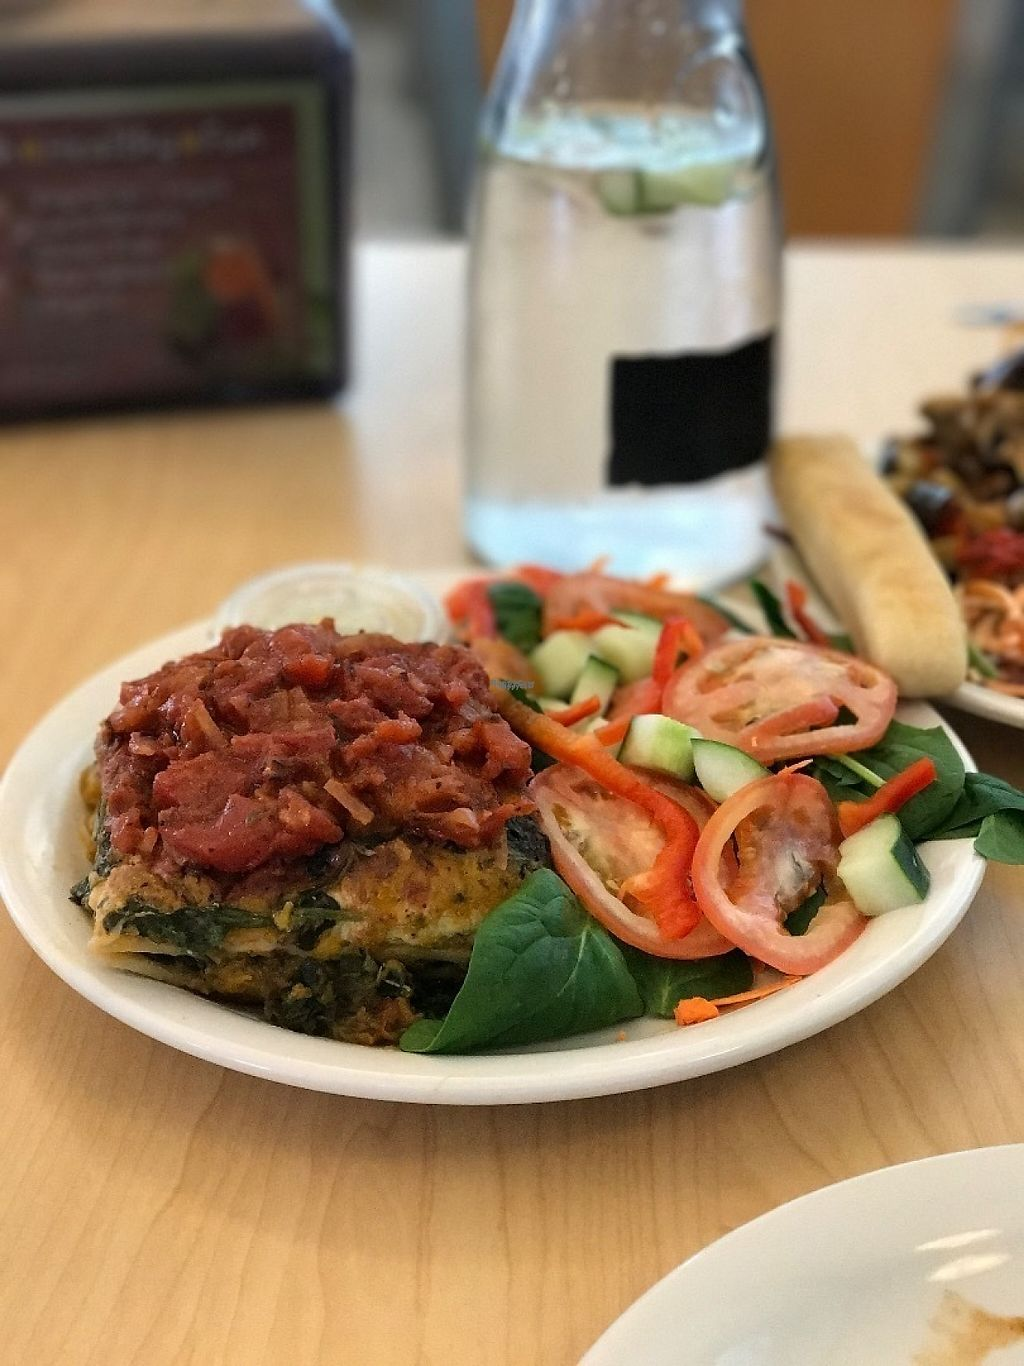 """Photo of Wild Rabbit Cafe and Health Bar  by <a href=""""/members/profile/DillonAbraham"""">DillonAbraham</a> <br/>Spinach Butternut Squash lasagna. Made with tofu ricotta and topped with fresh chunky marinara. Served with a salad (spinach, tomato, carrot, cucumber, bell pepper) and house dressing.  <br/> February 14, 2017  - <a href='/contact/abuse/image/64764/226392'>Report</a>"""